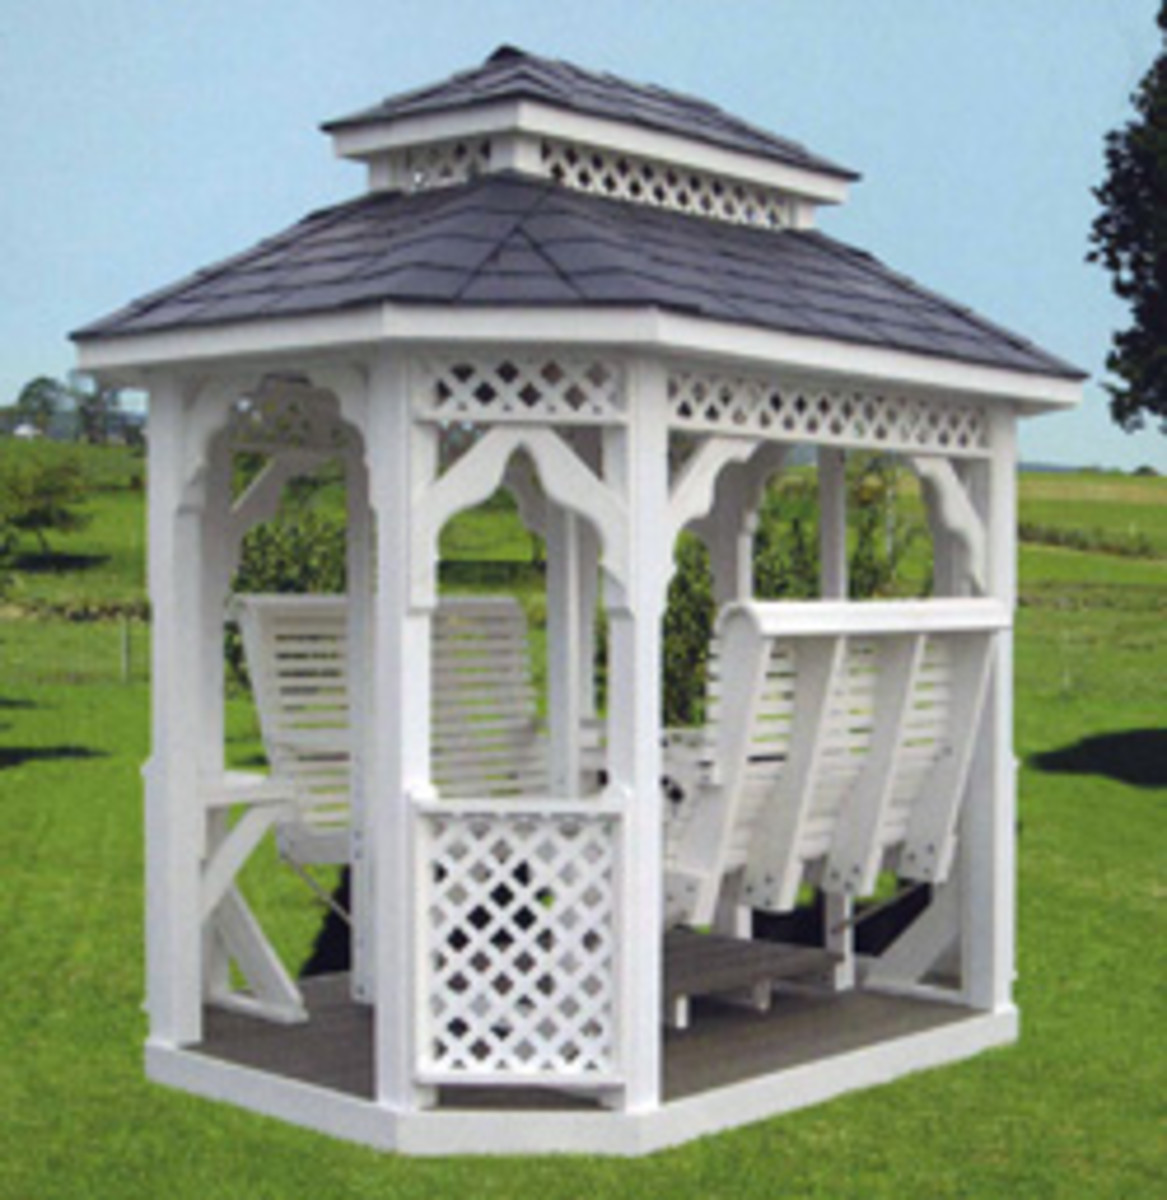 White Double Swing with Covered Tiered Roof with white lattice